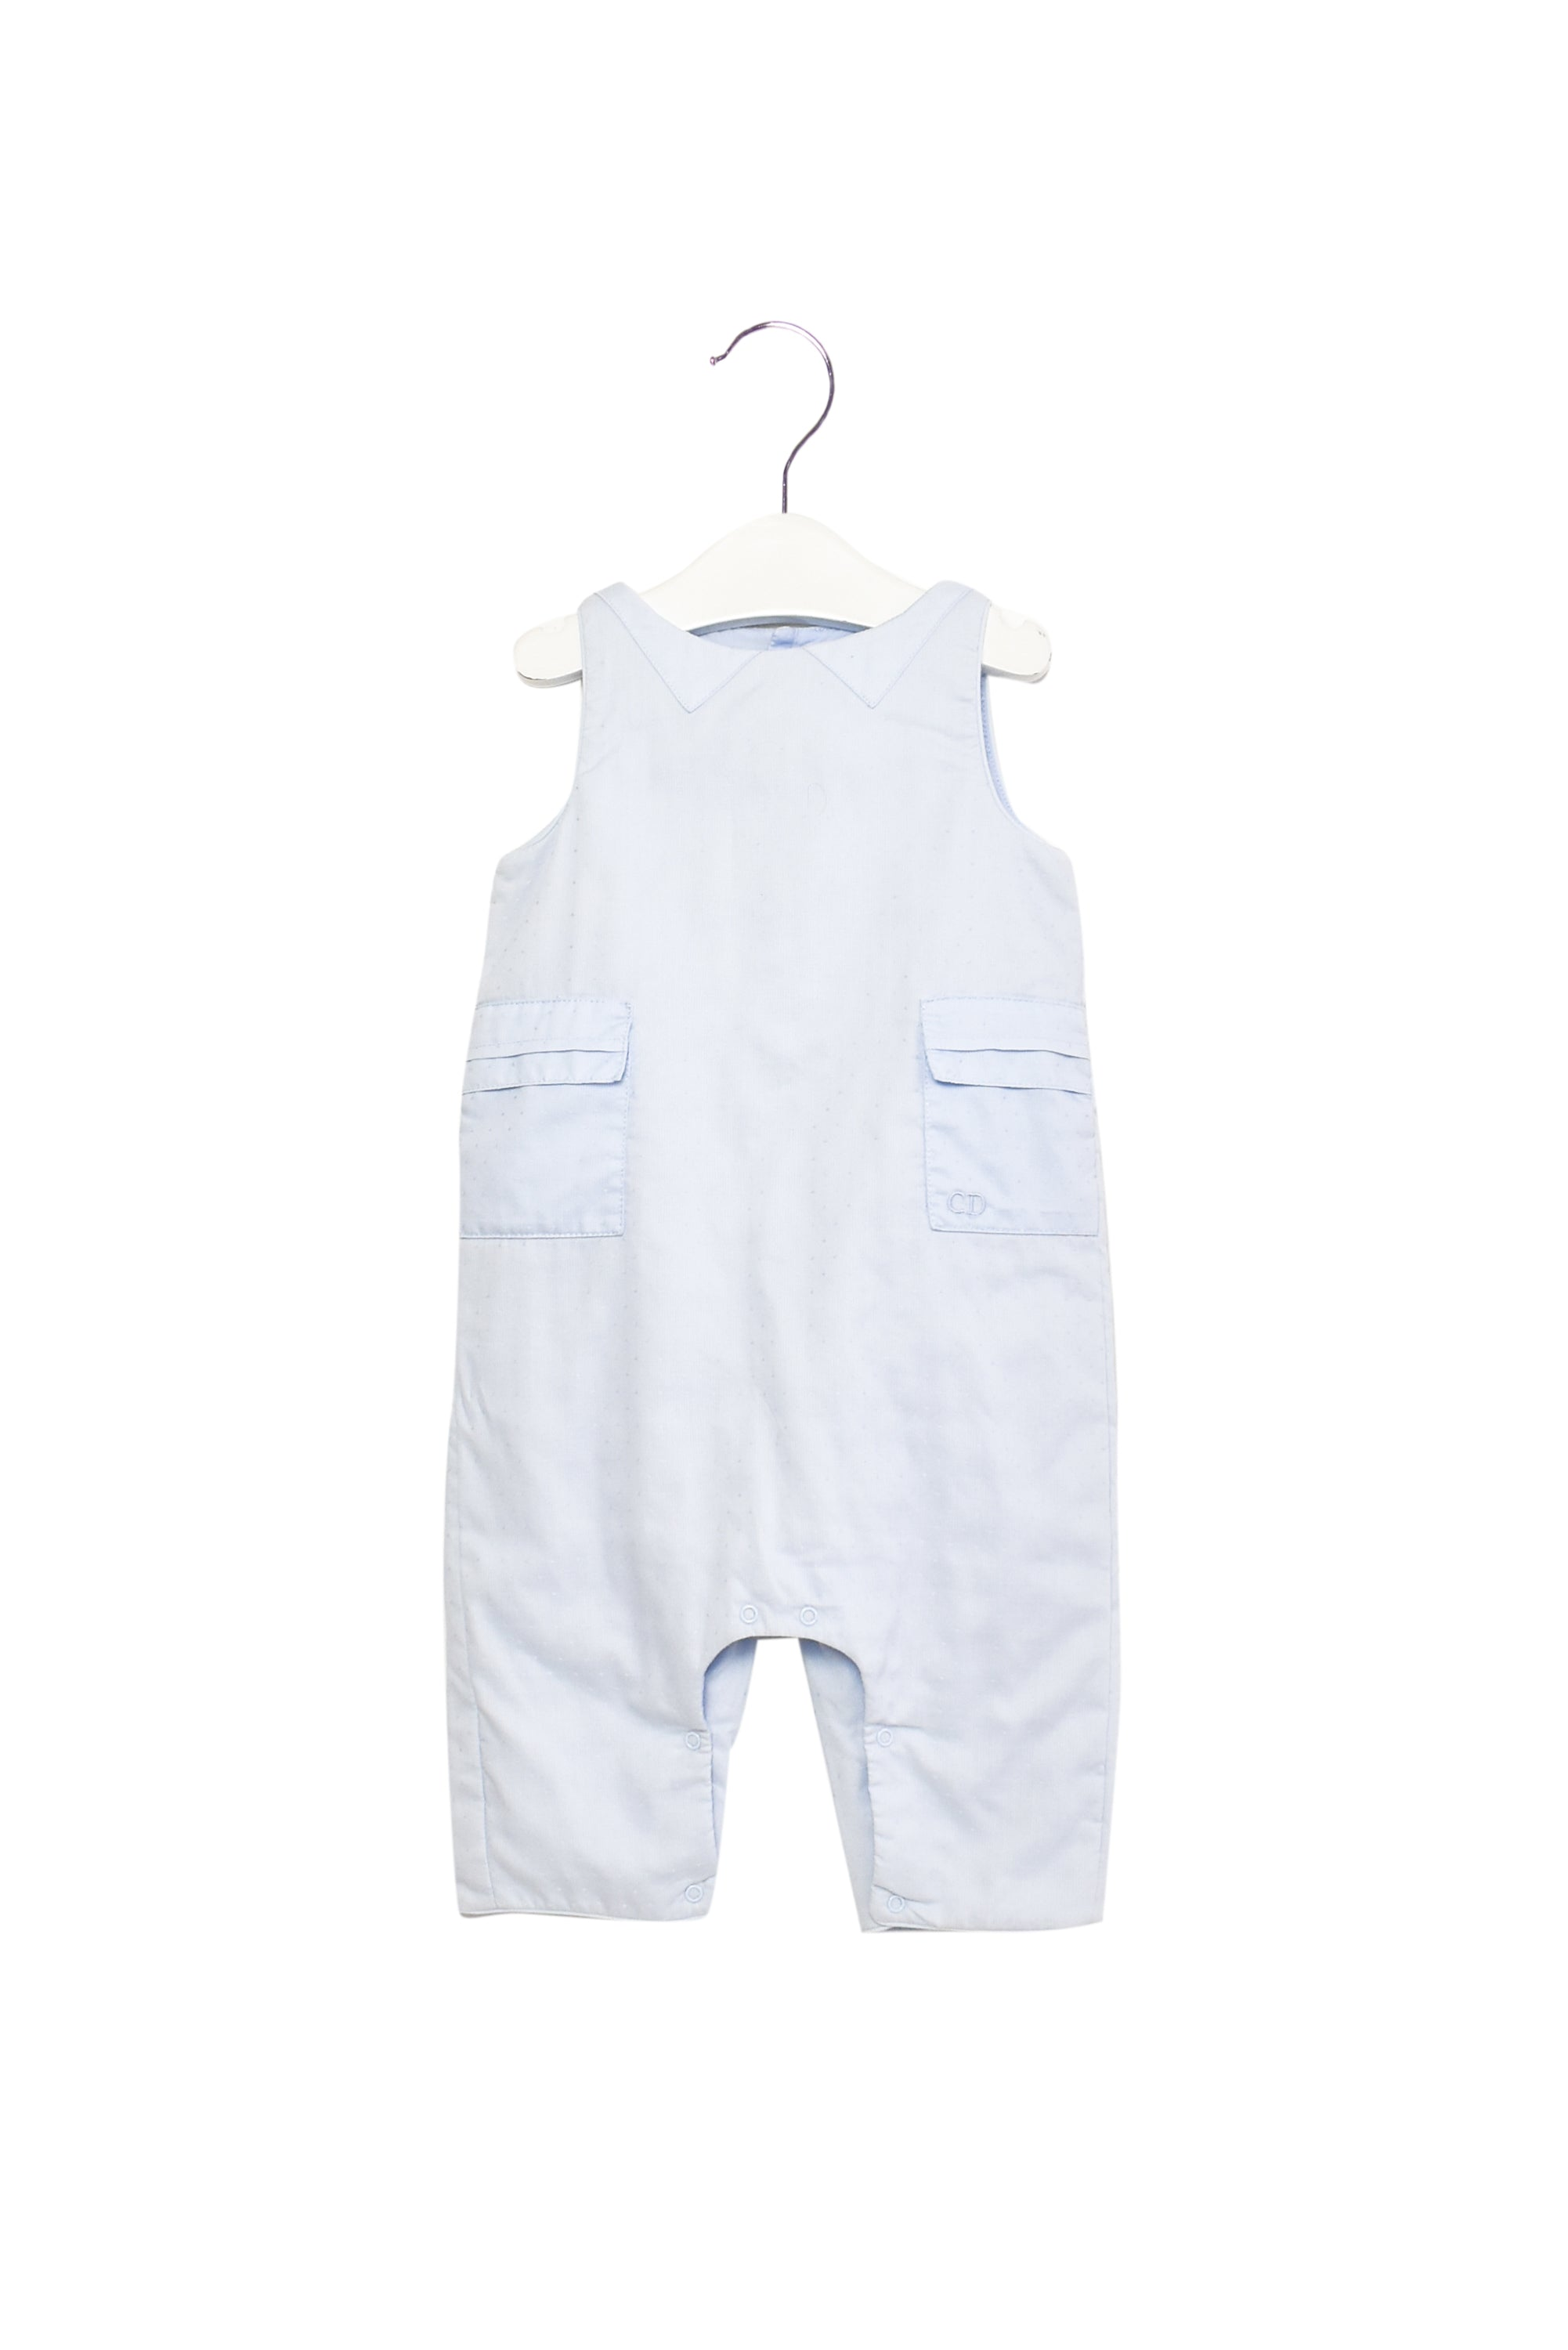 10011908 Dior Baby ~ Overall 6M at Retykle